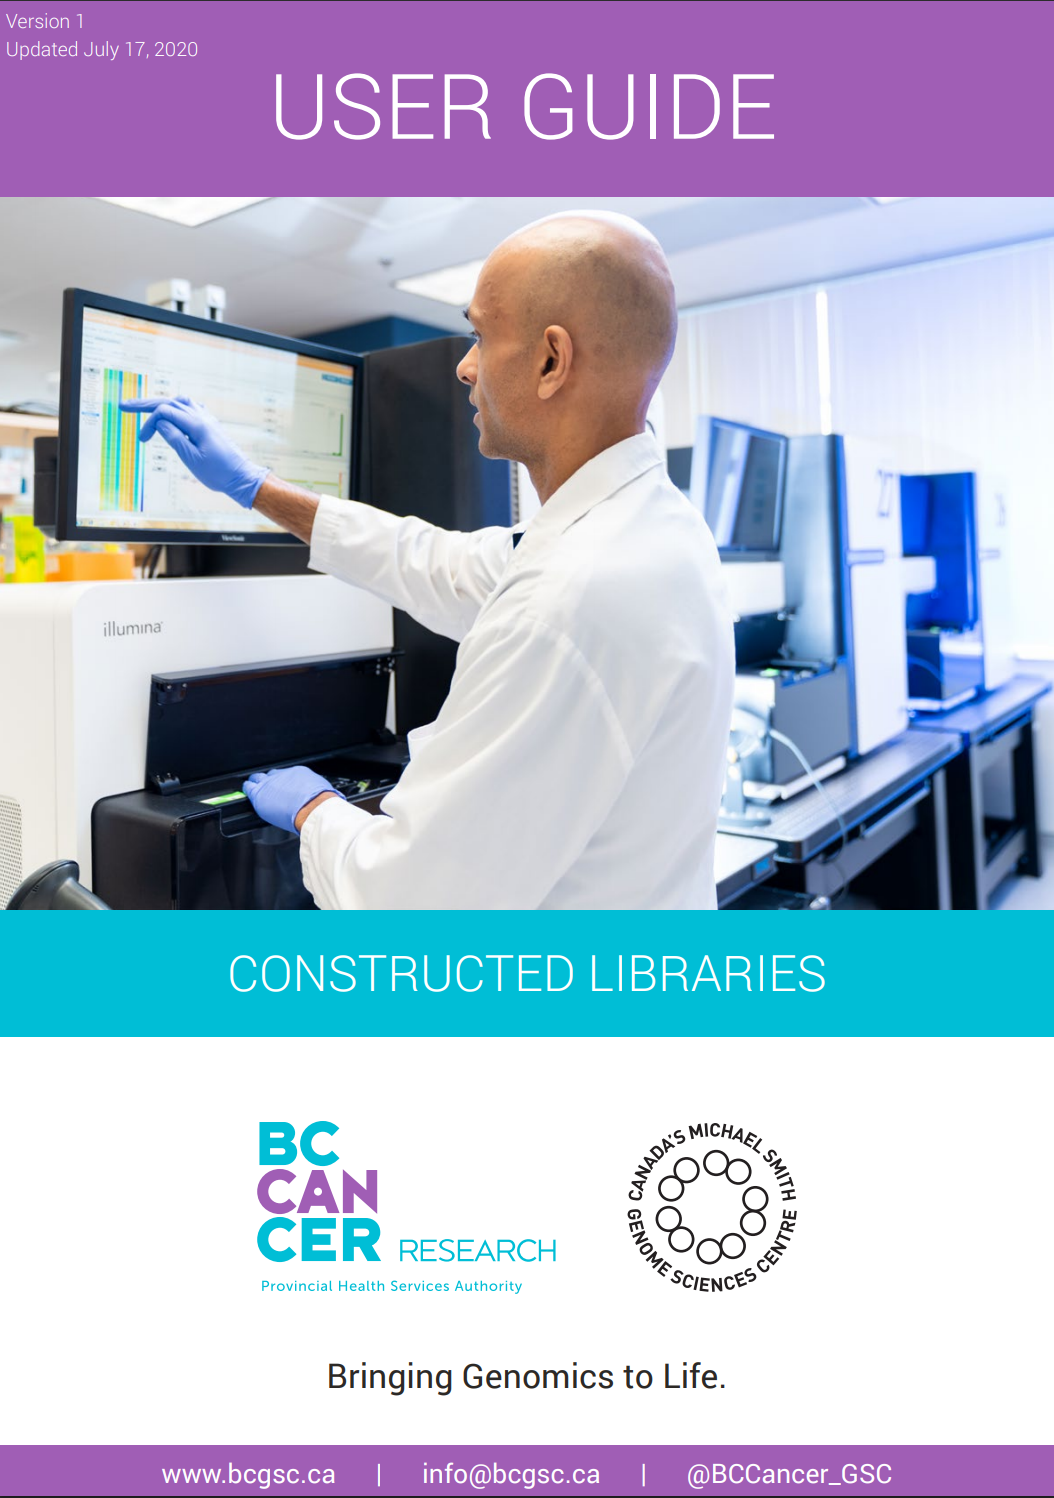 Constructed libraries